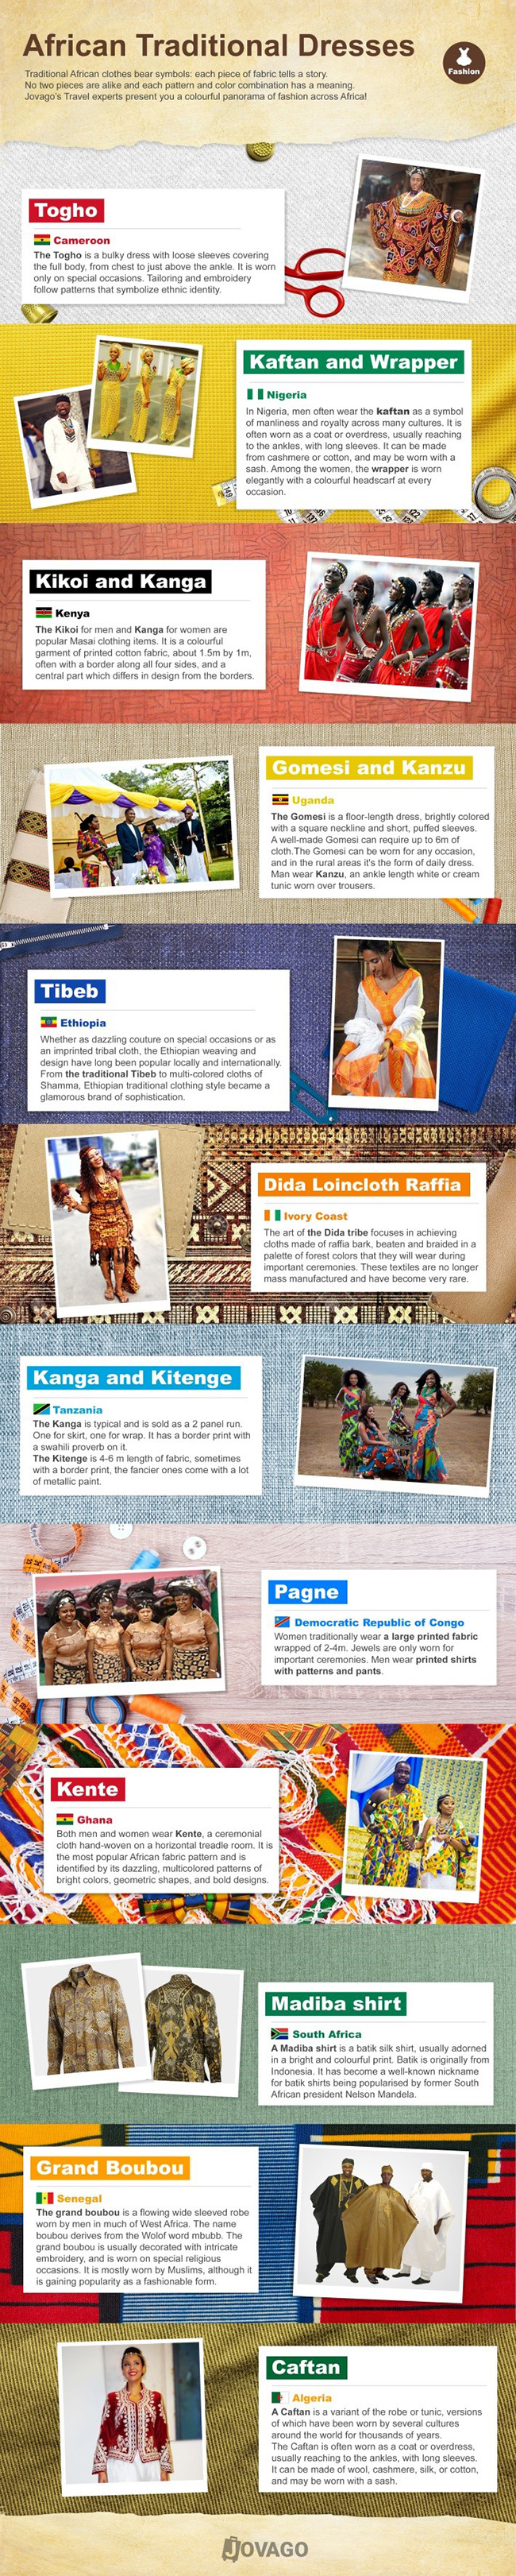 traditional dresses reflect rich cultural heritage